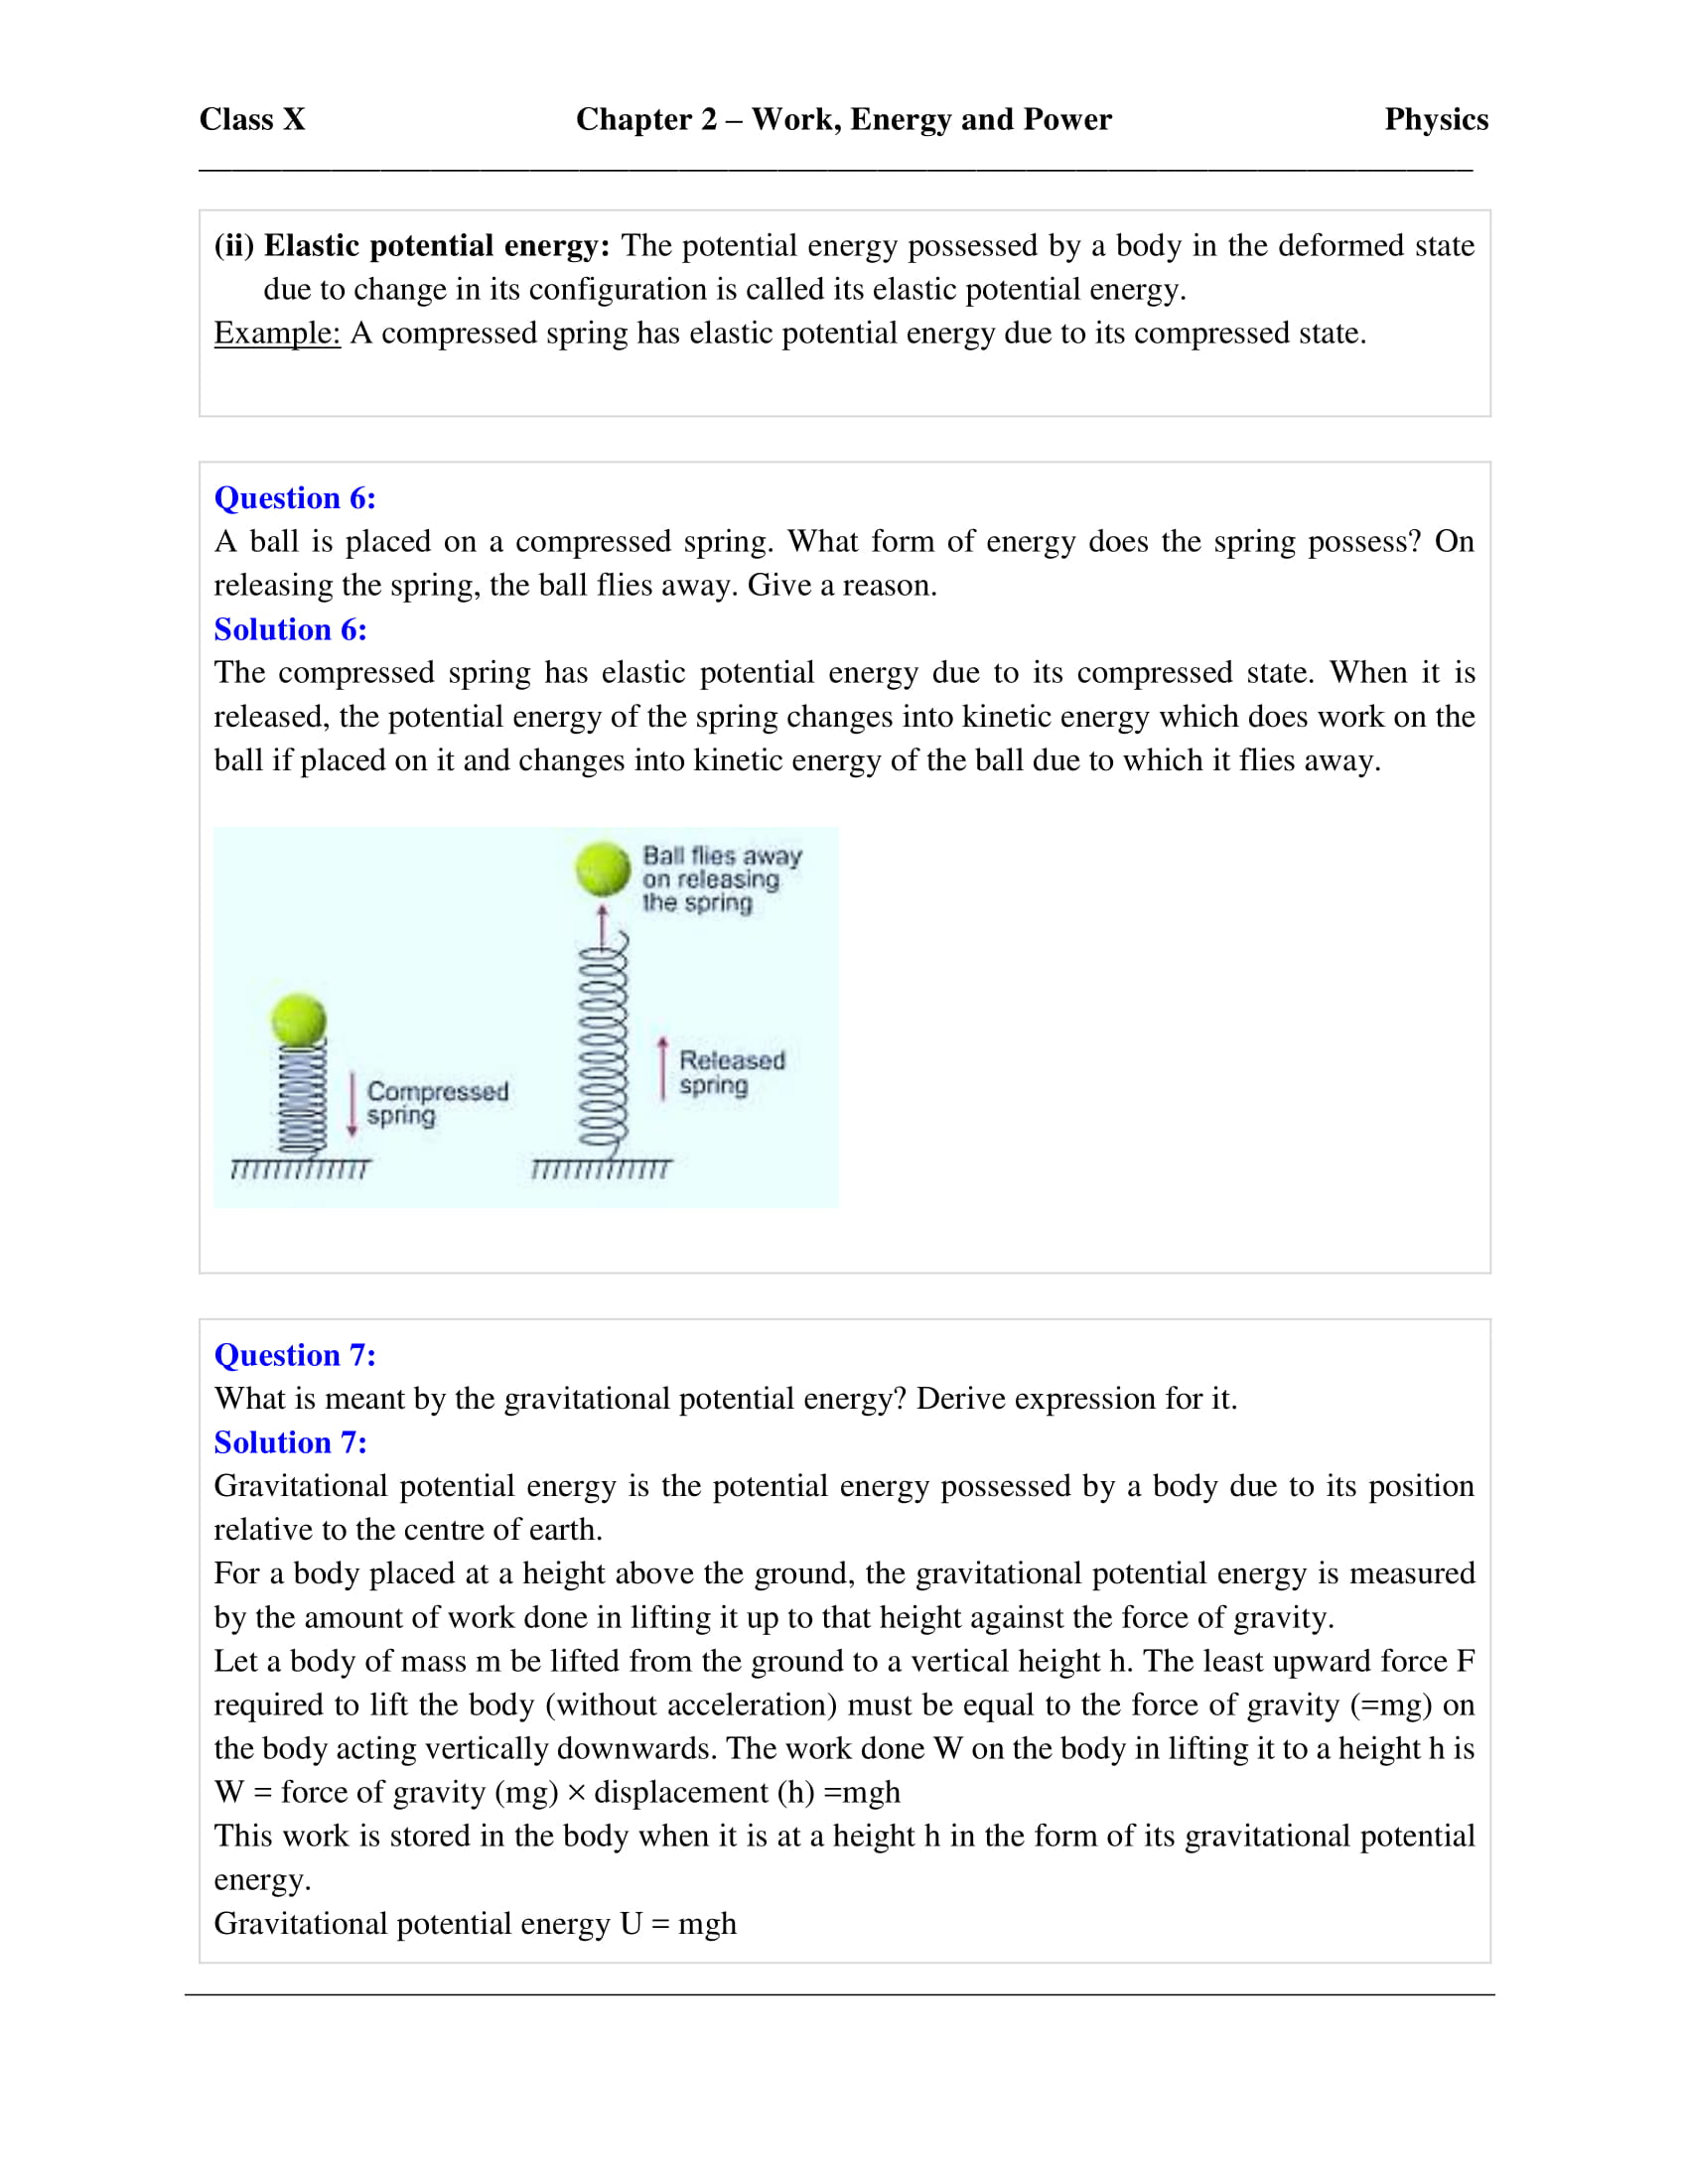 icse-selina-physics-solutions-class-10-chapter-2-work-energy-and-power-17